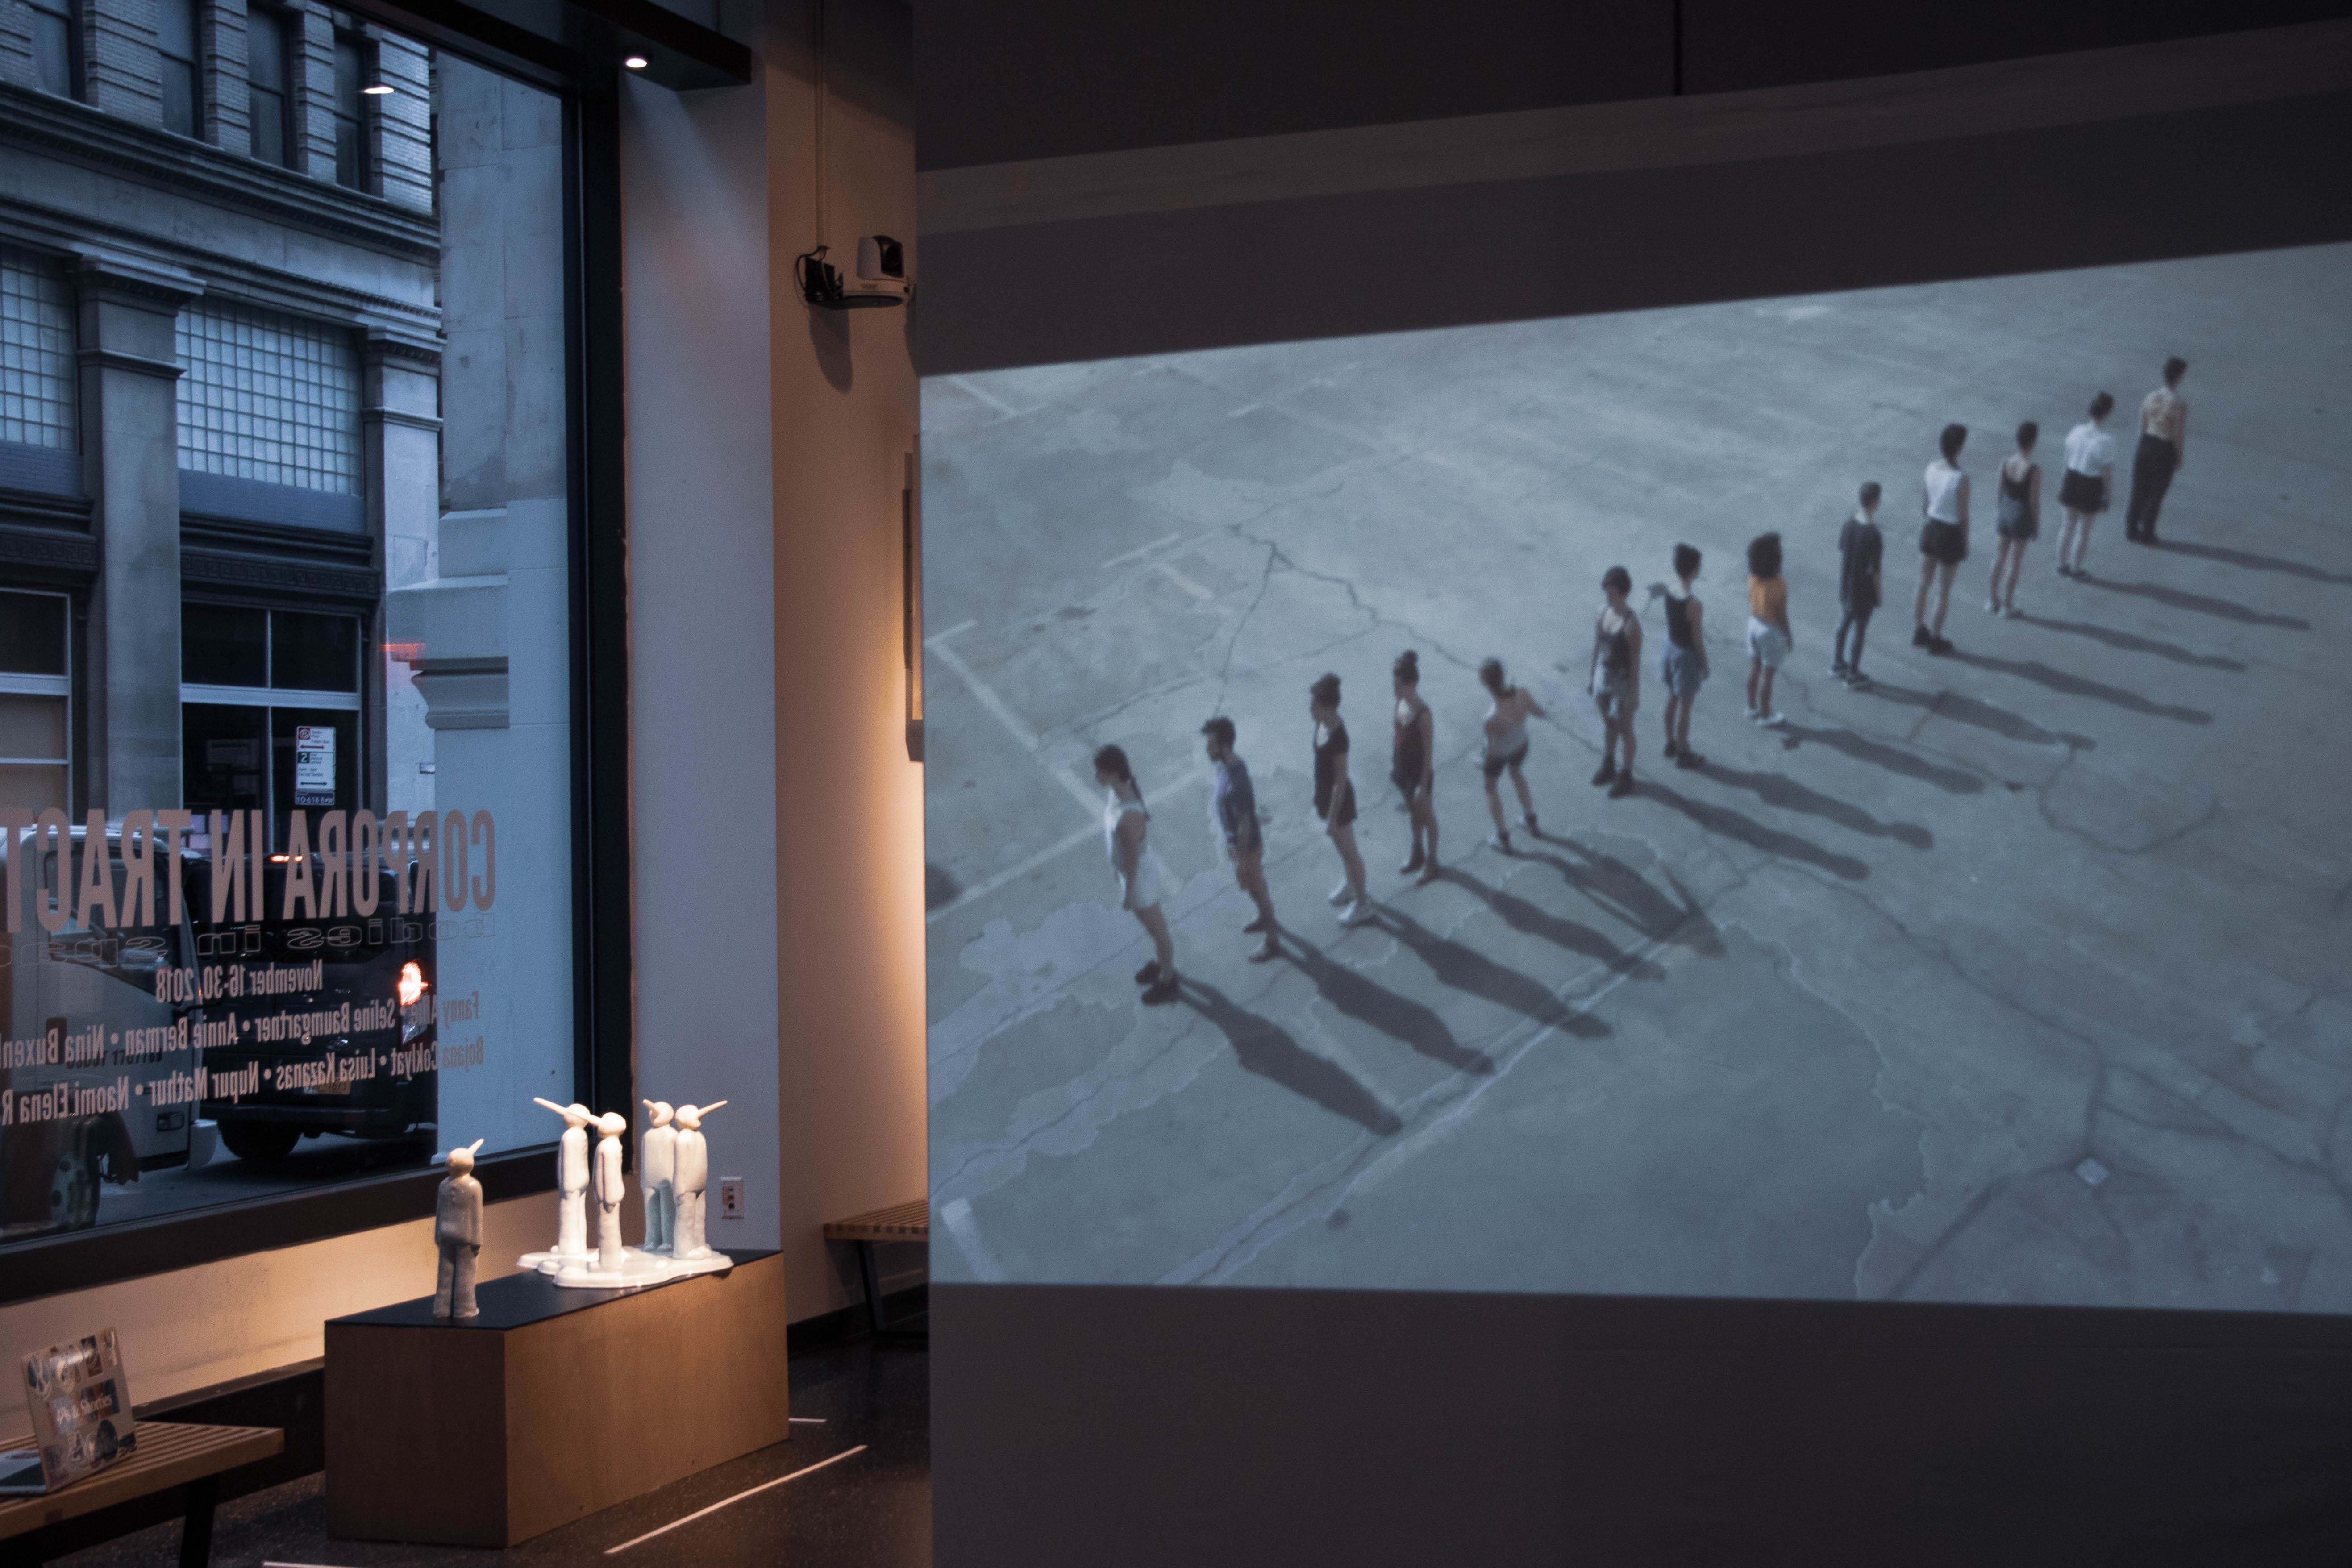 gallery shot with a video projection on the righthand side and an illuminated platform with sculptural figures on the left.